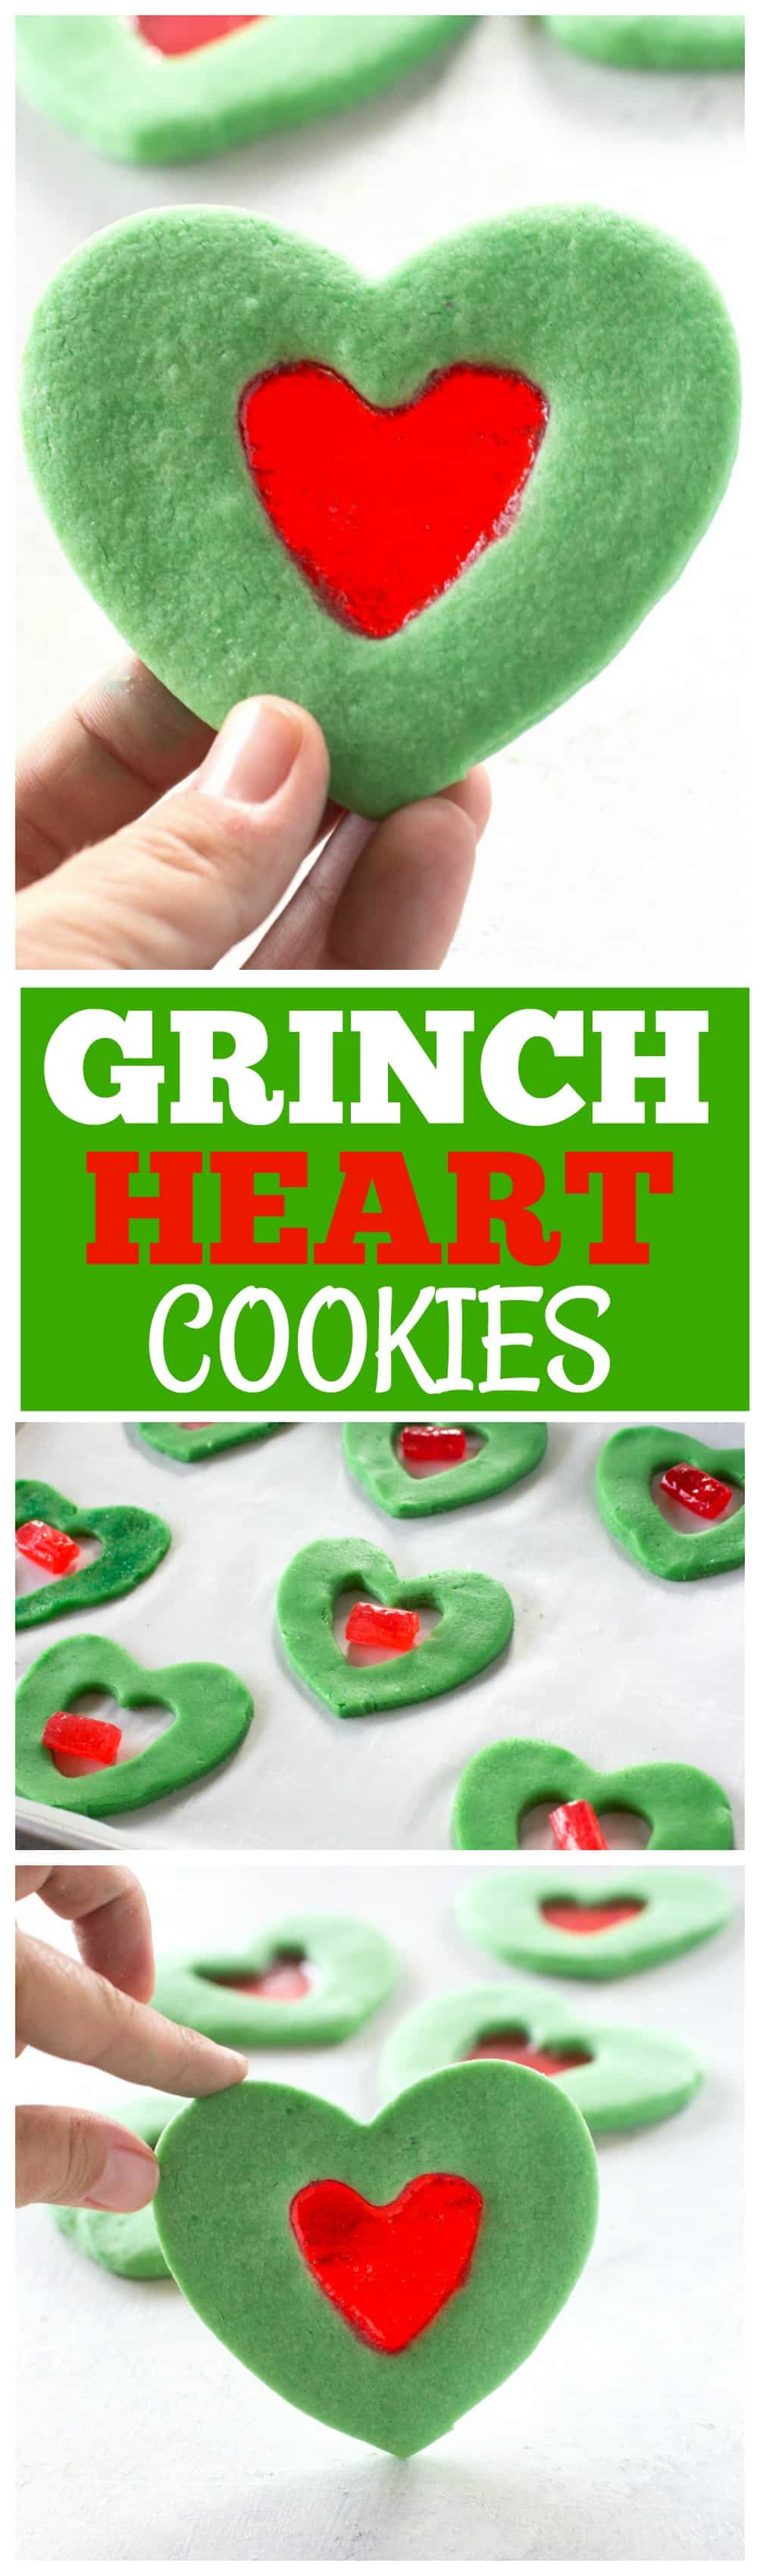 These Grinch Heart Cookies are magical little treats that you can make at Christmas with your kids. Sugar cookies dyed green with a stained glass red heart in the middle. #christmas #grinch #heart #cookies #dessert #sugar